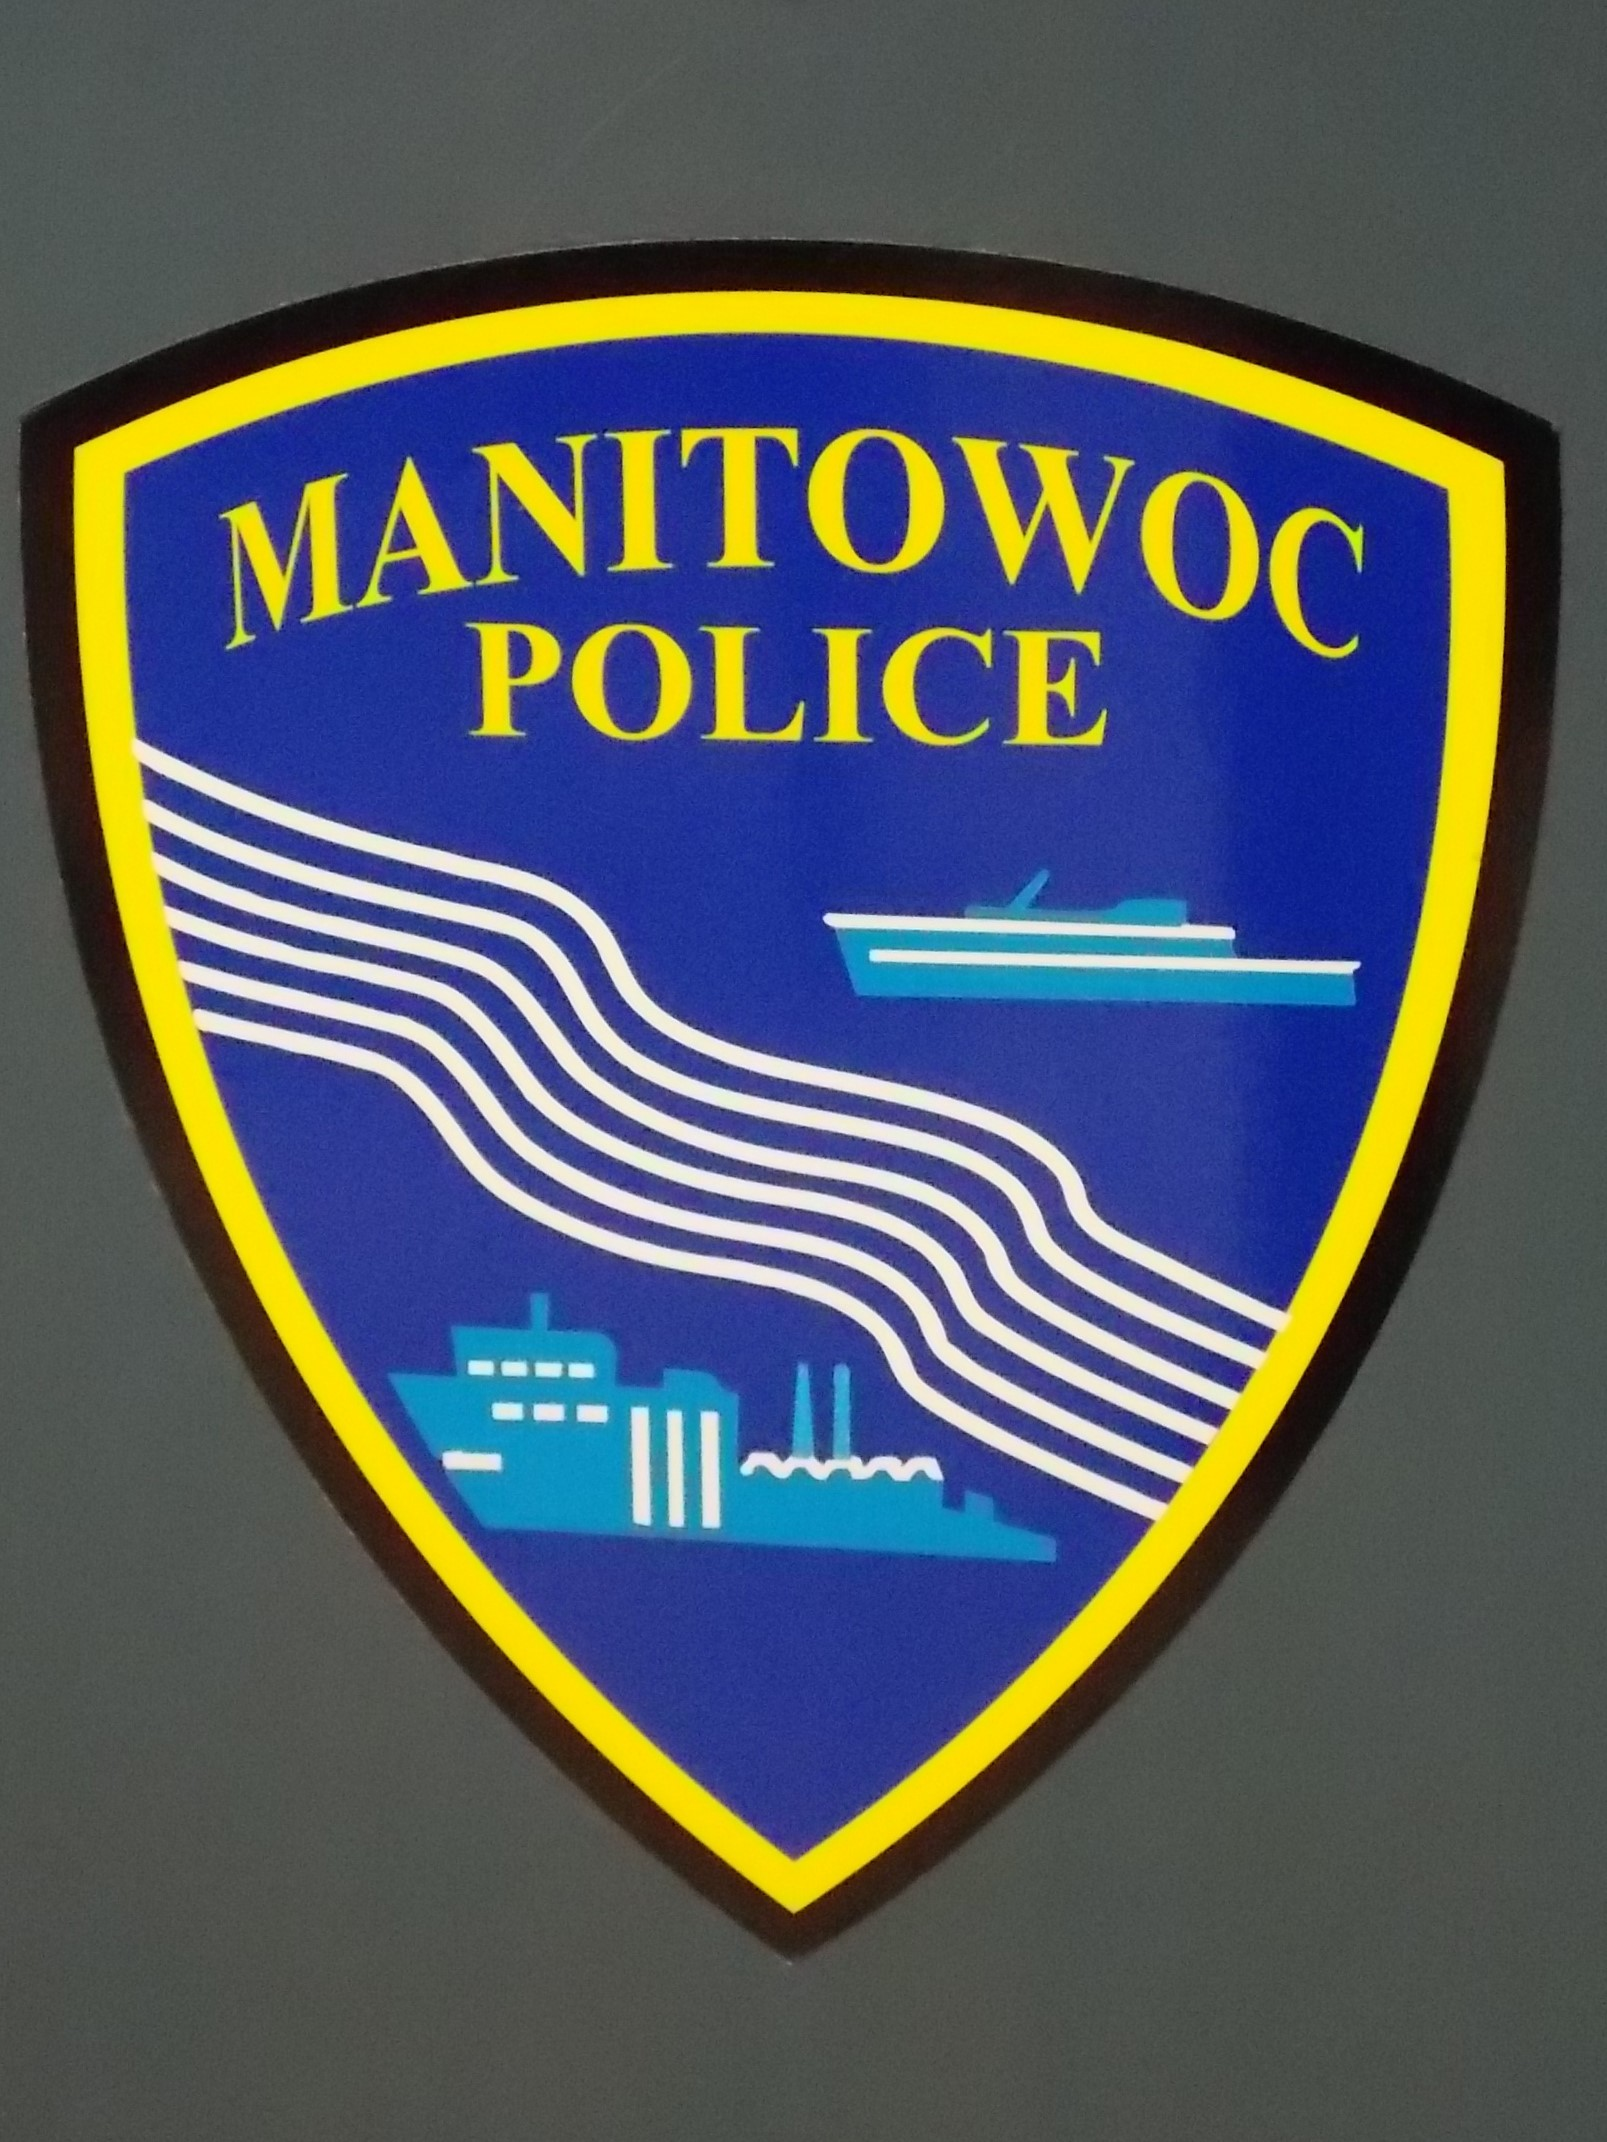 Manitowoc Police Chief Reminds All to Stay Safe This Summer